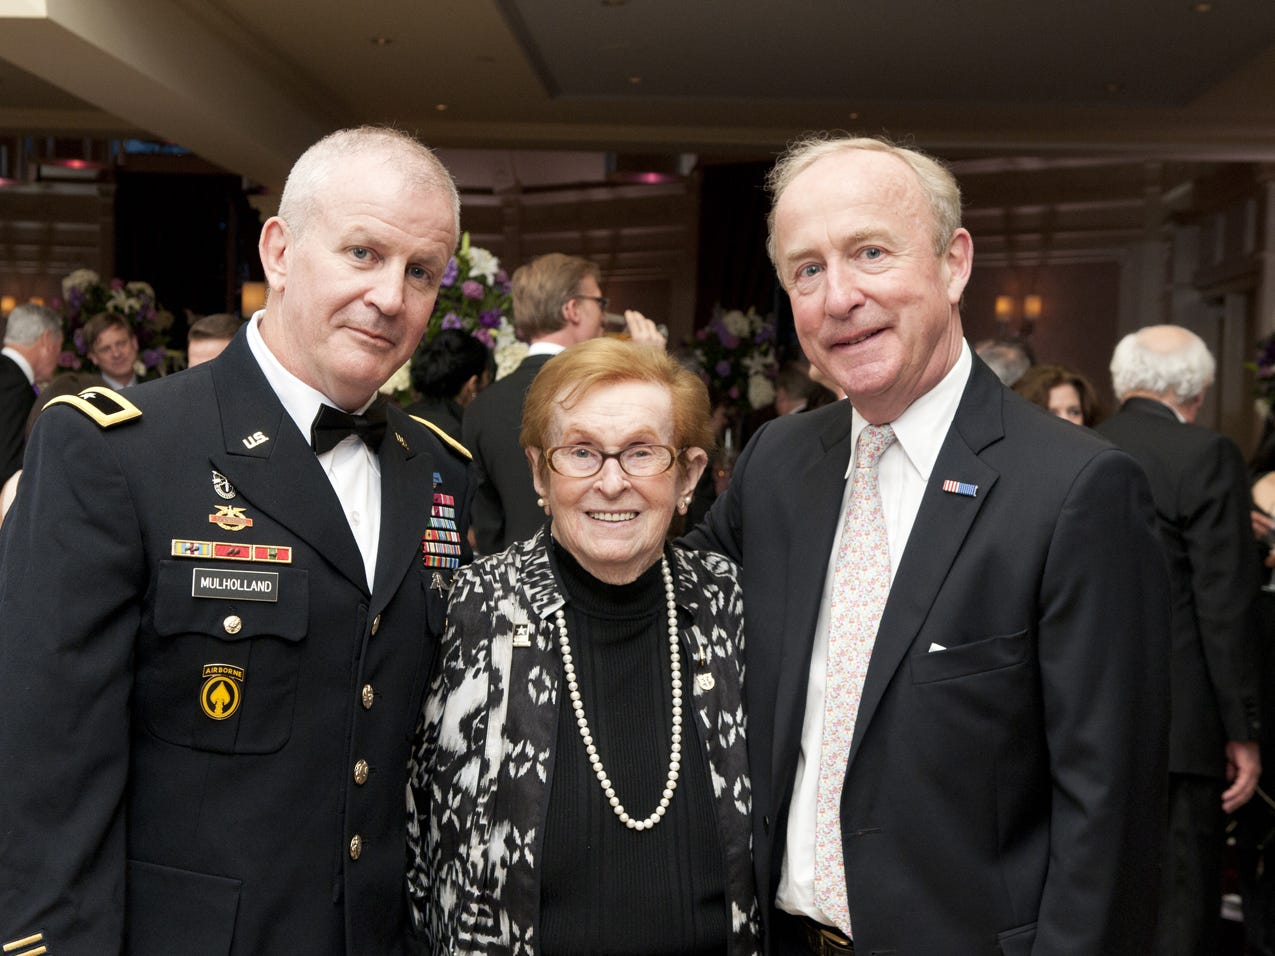 Brigadier General Sean P. Mulholland; Lifetime Achievement Award recipient Mary Mulholland; Congressman Rodney Frelinghuysen.